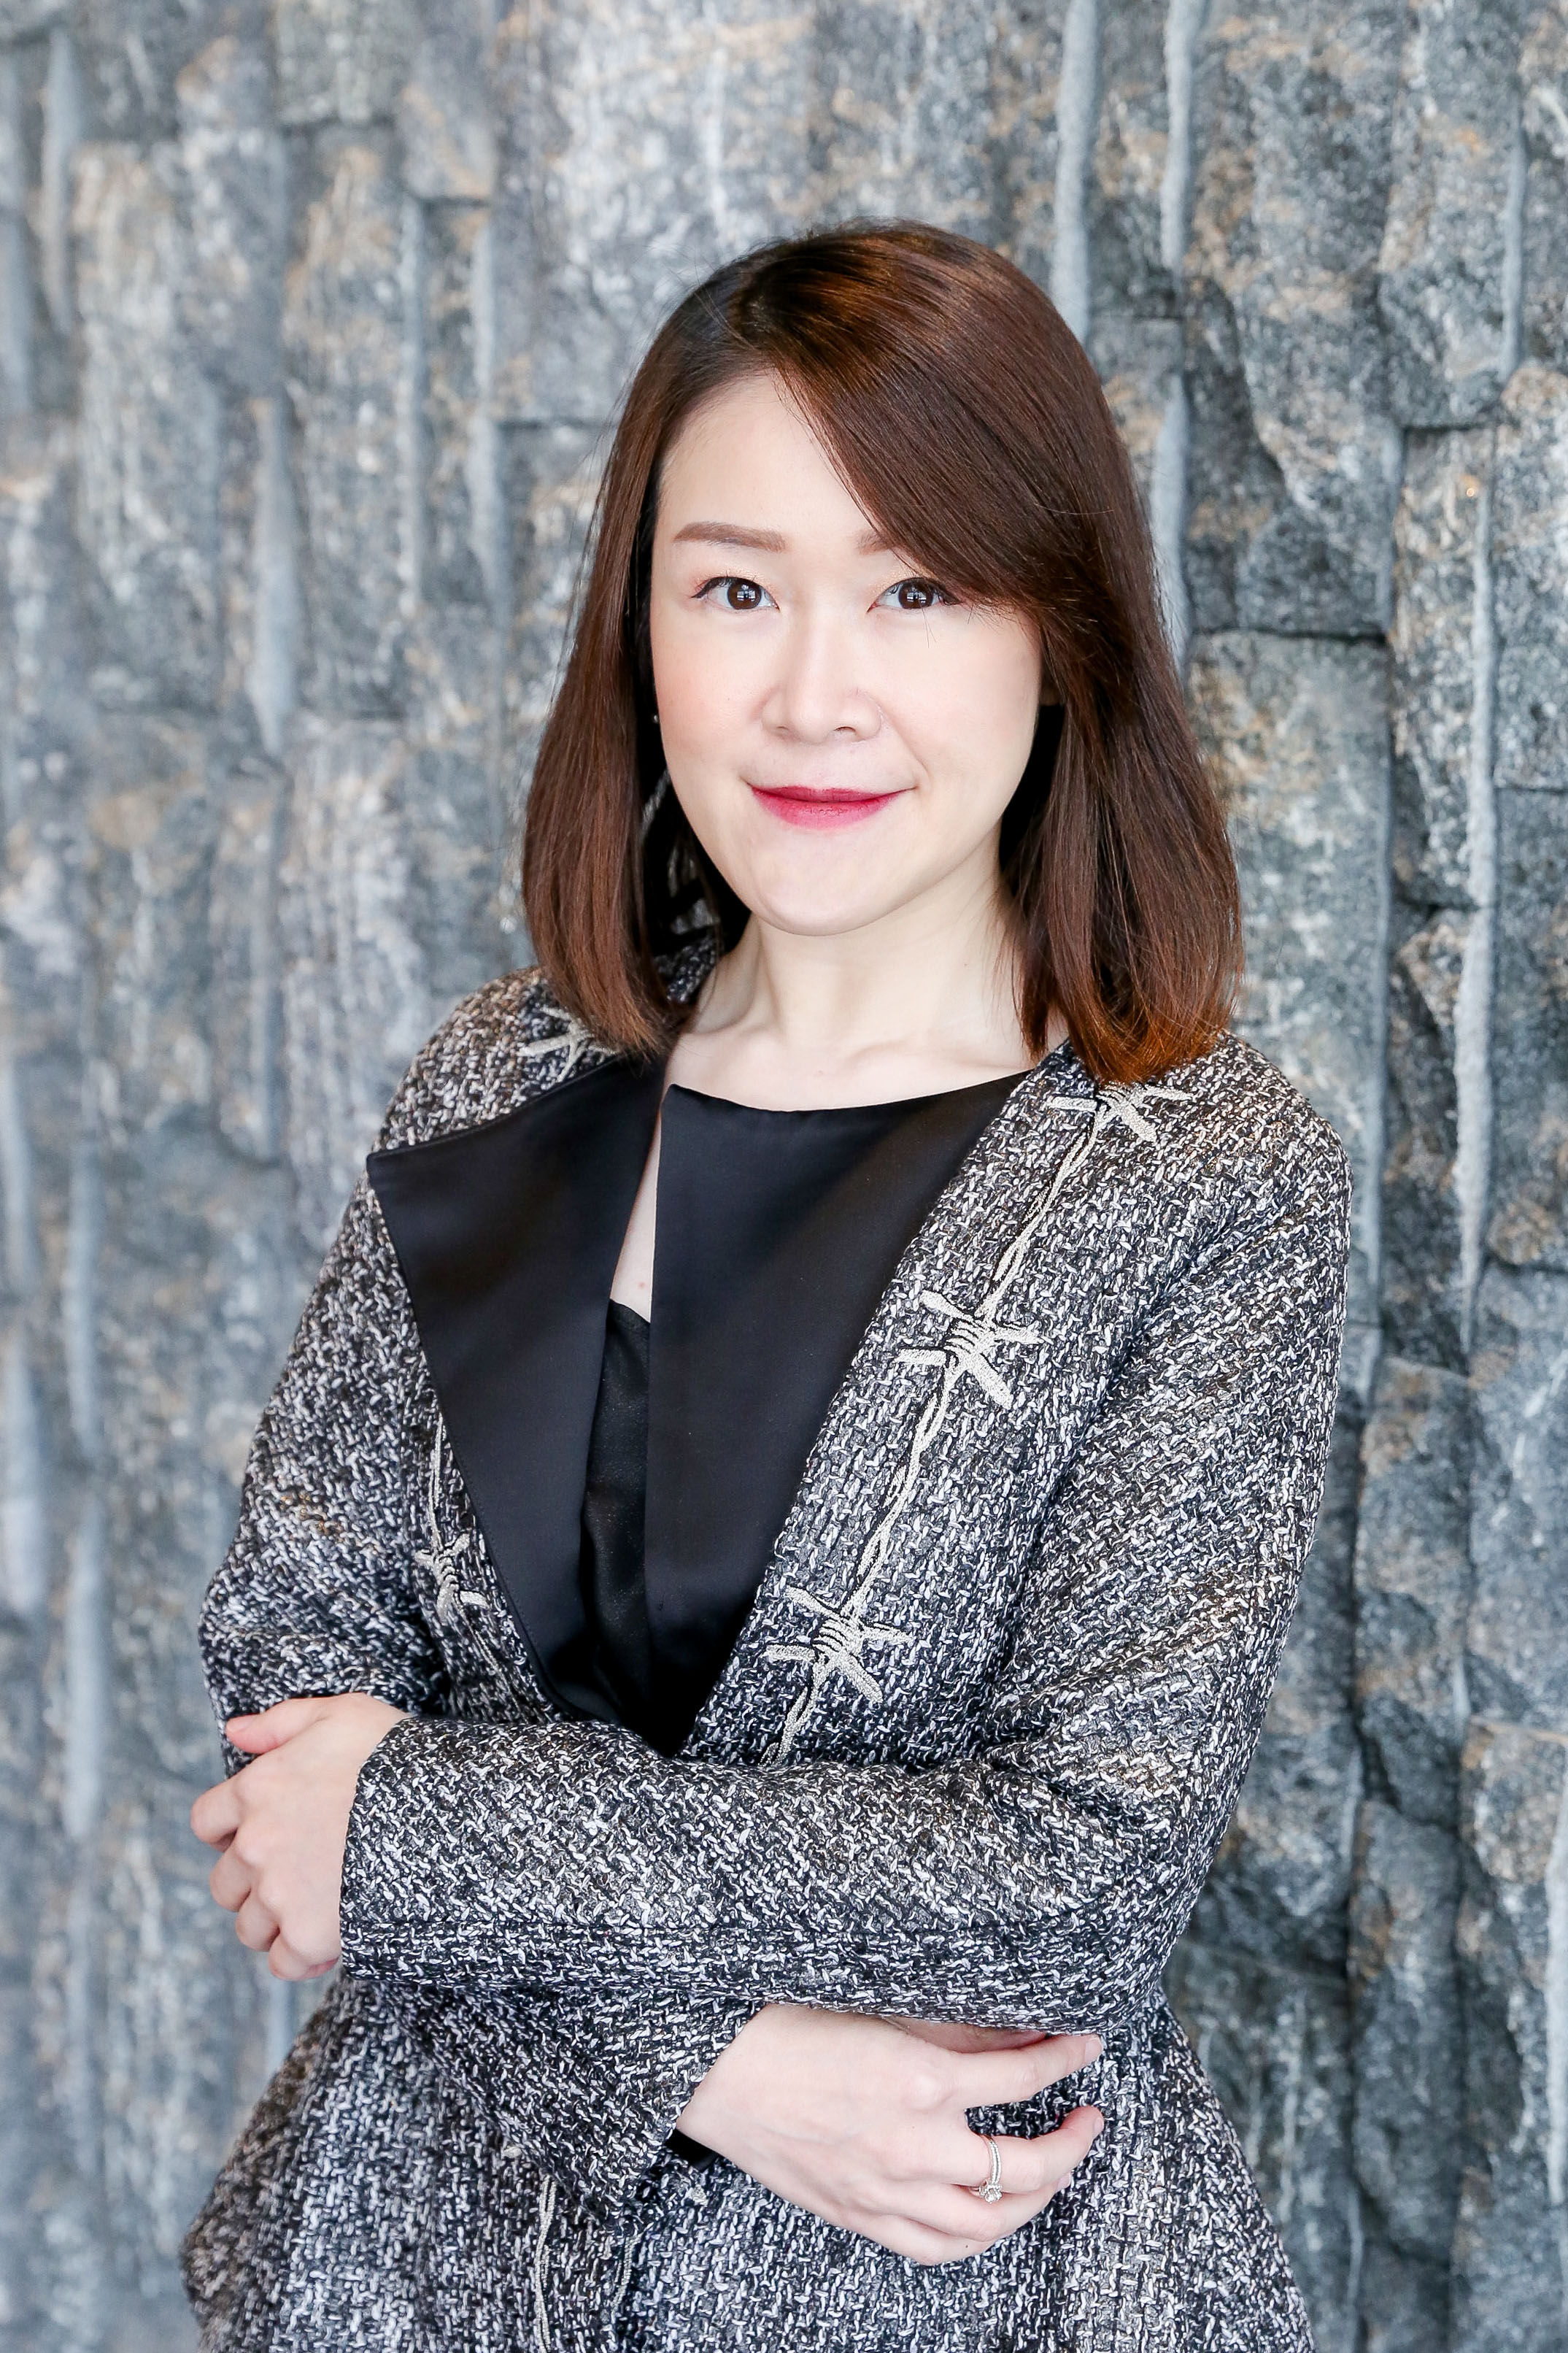 Centara hires experienced executive to develop talent and support its distinctive culture